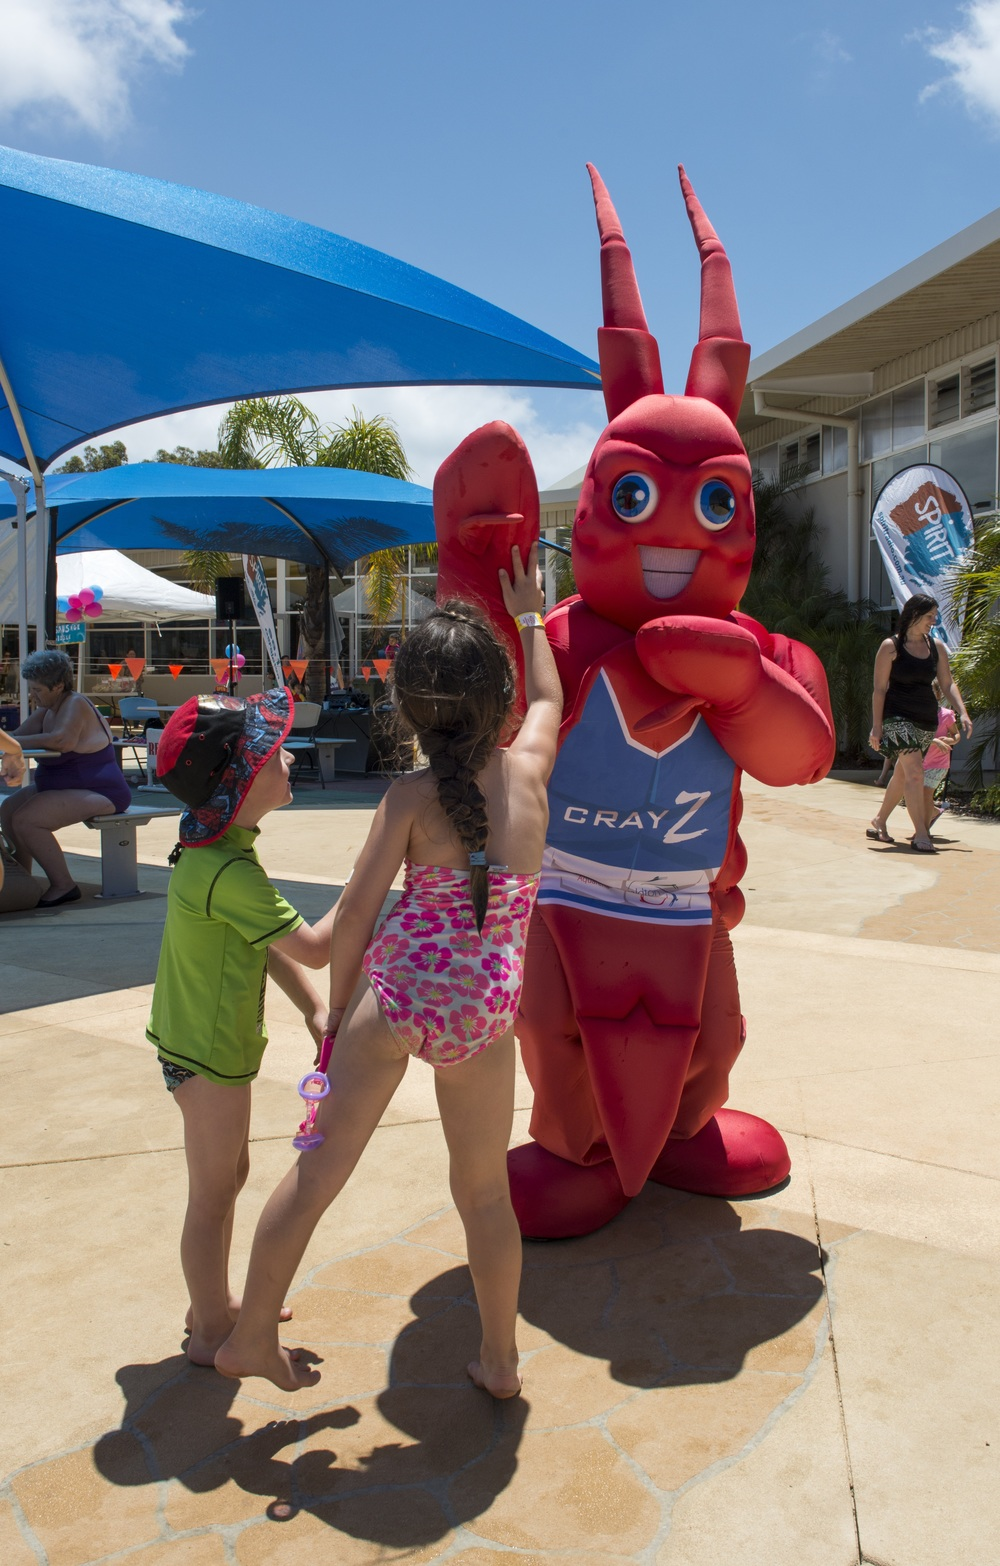 Cray Z will be making an appearance at Sunday's 98.1 Spirit Family Fun Day.